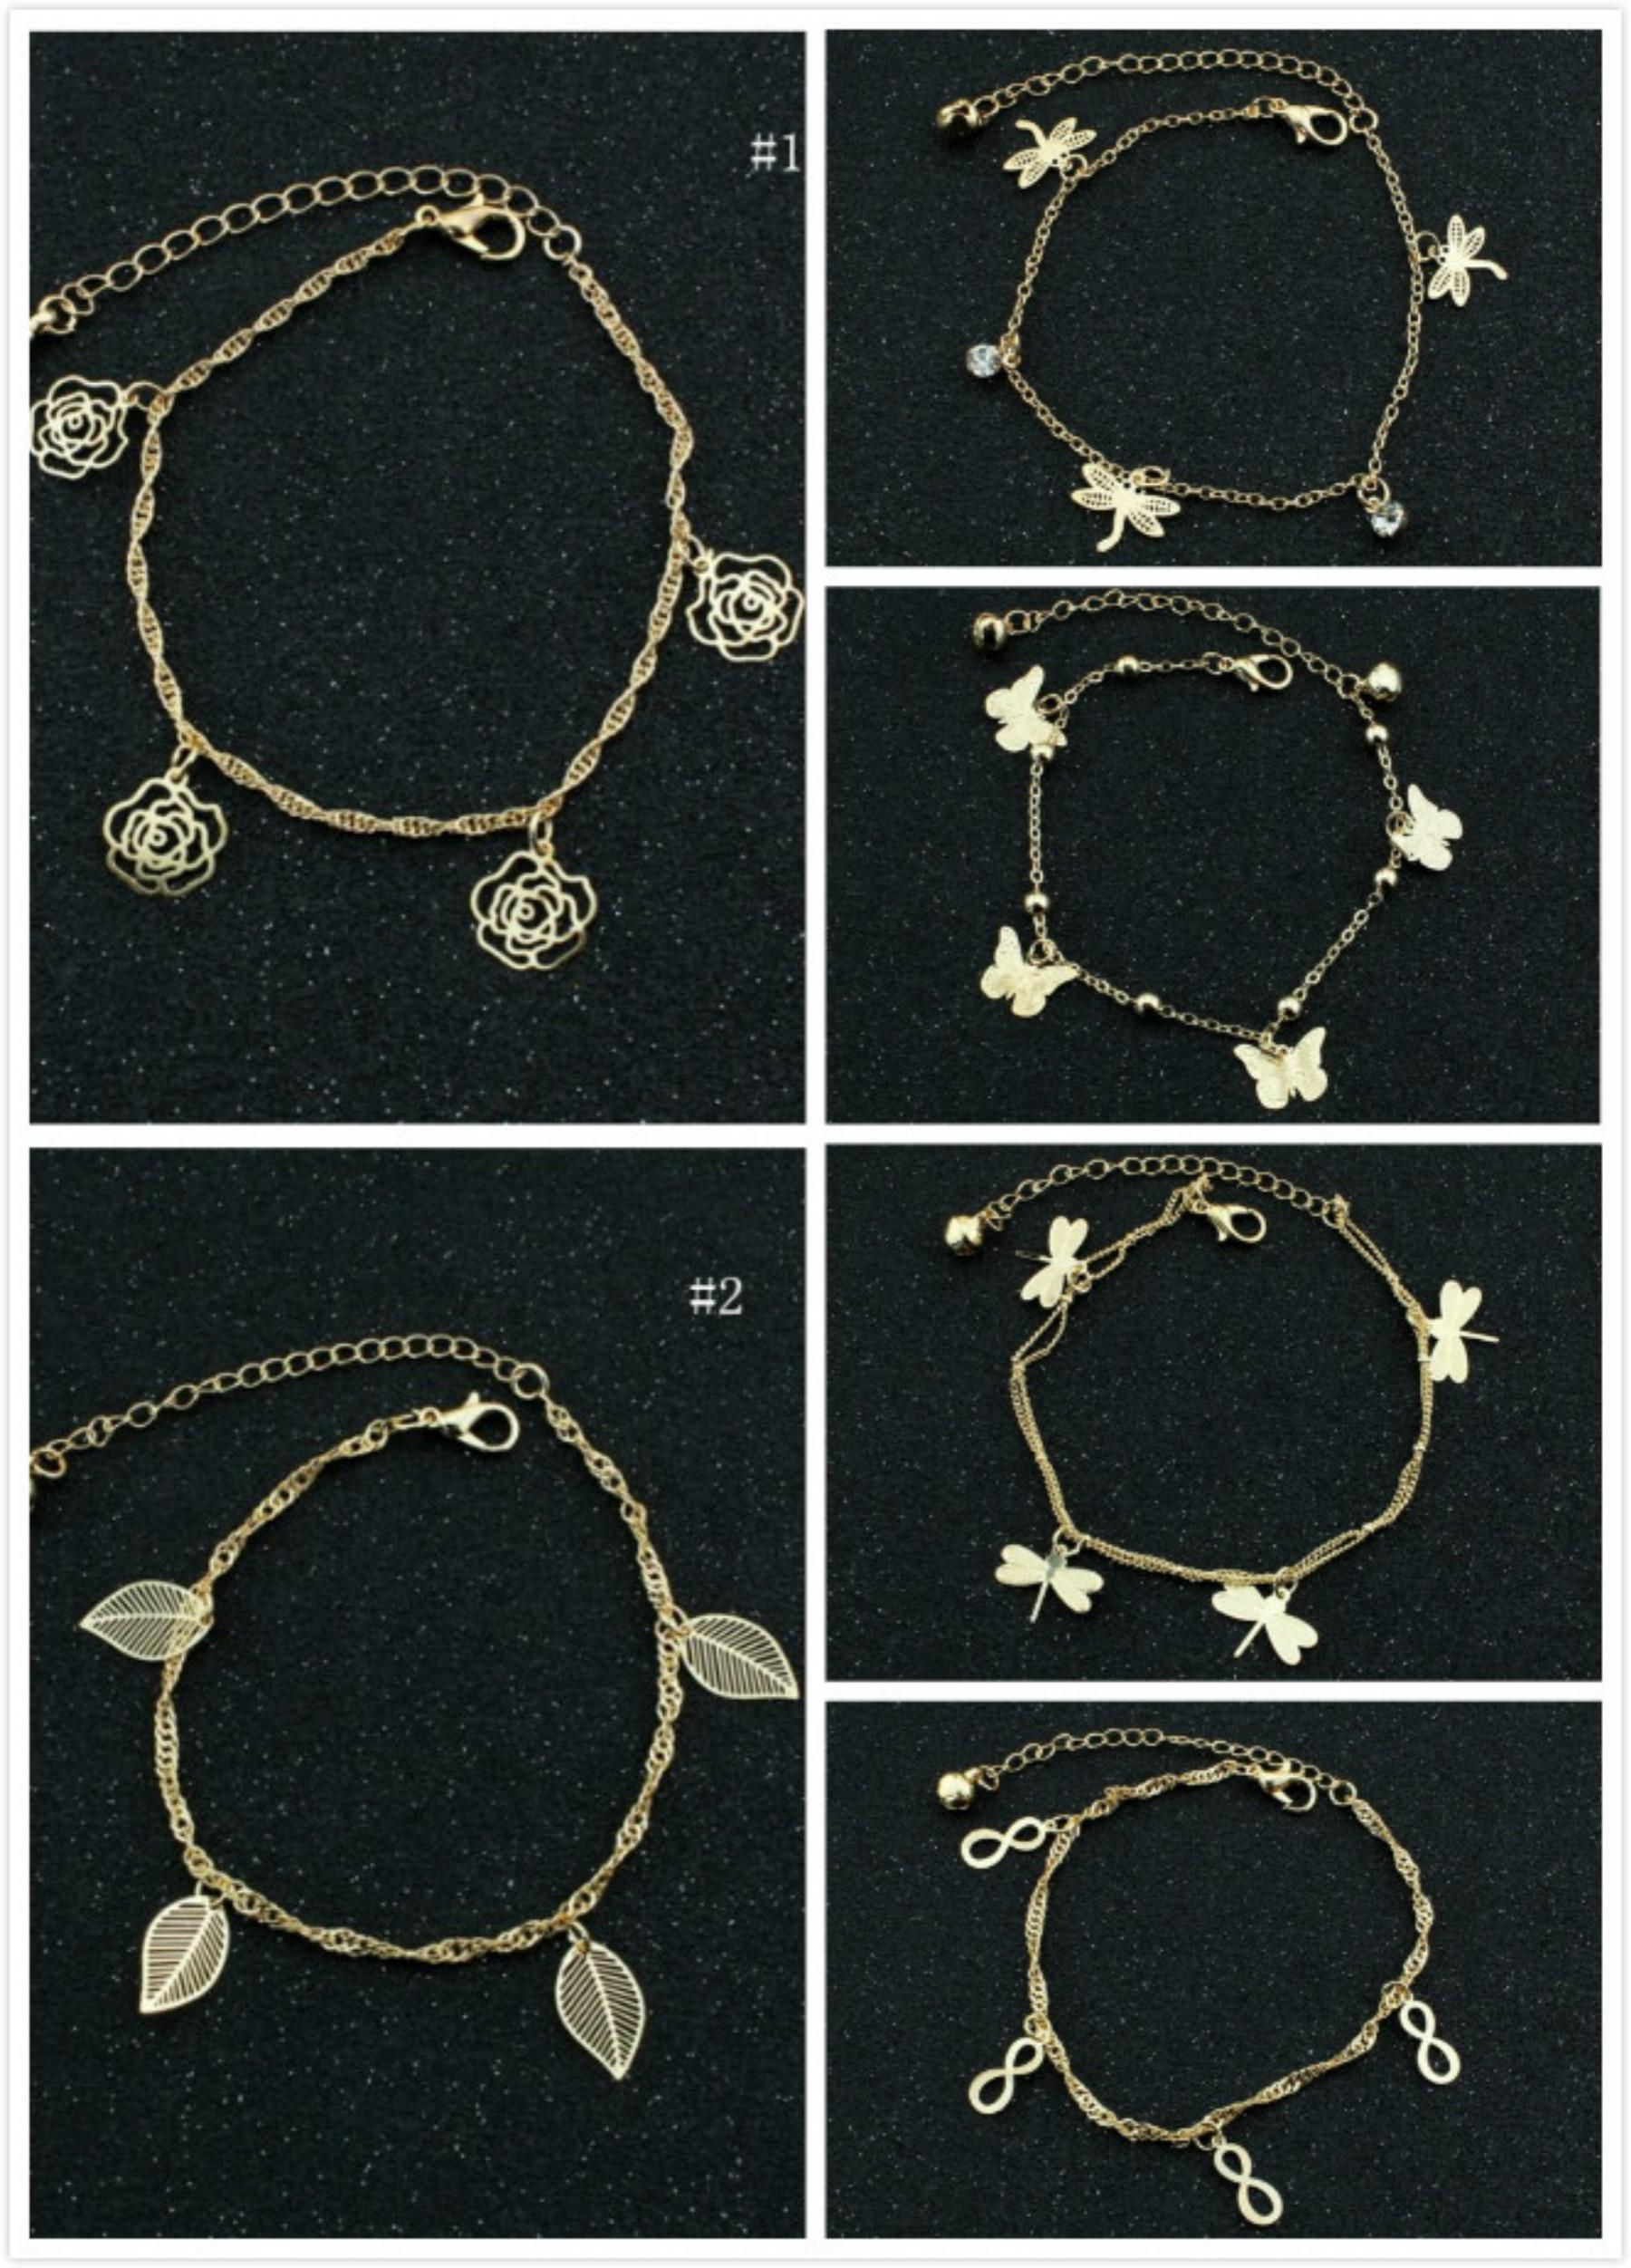 jewelry bracelet zoom il bracelets charms gold au rose fullxfull anklet mermaid ankle listing with